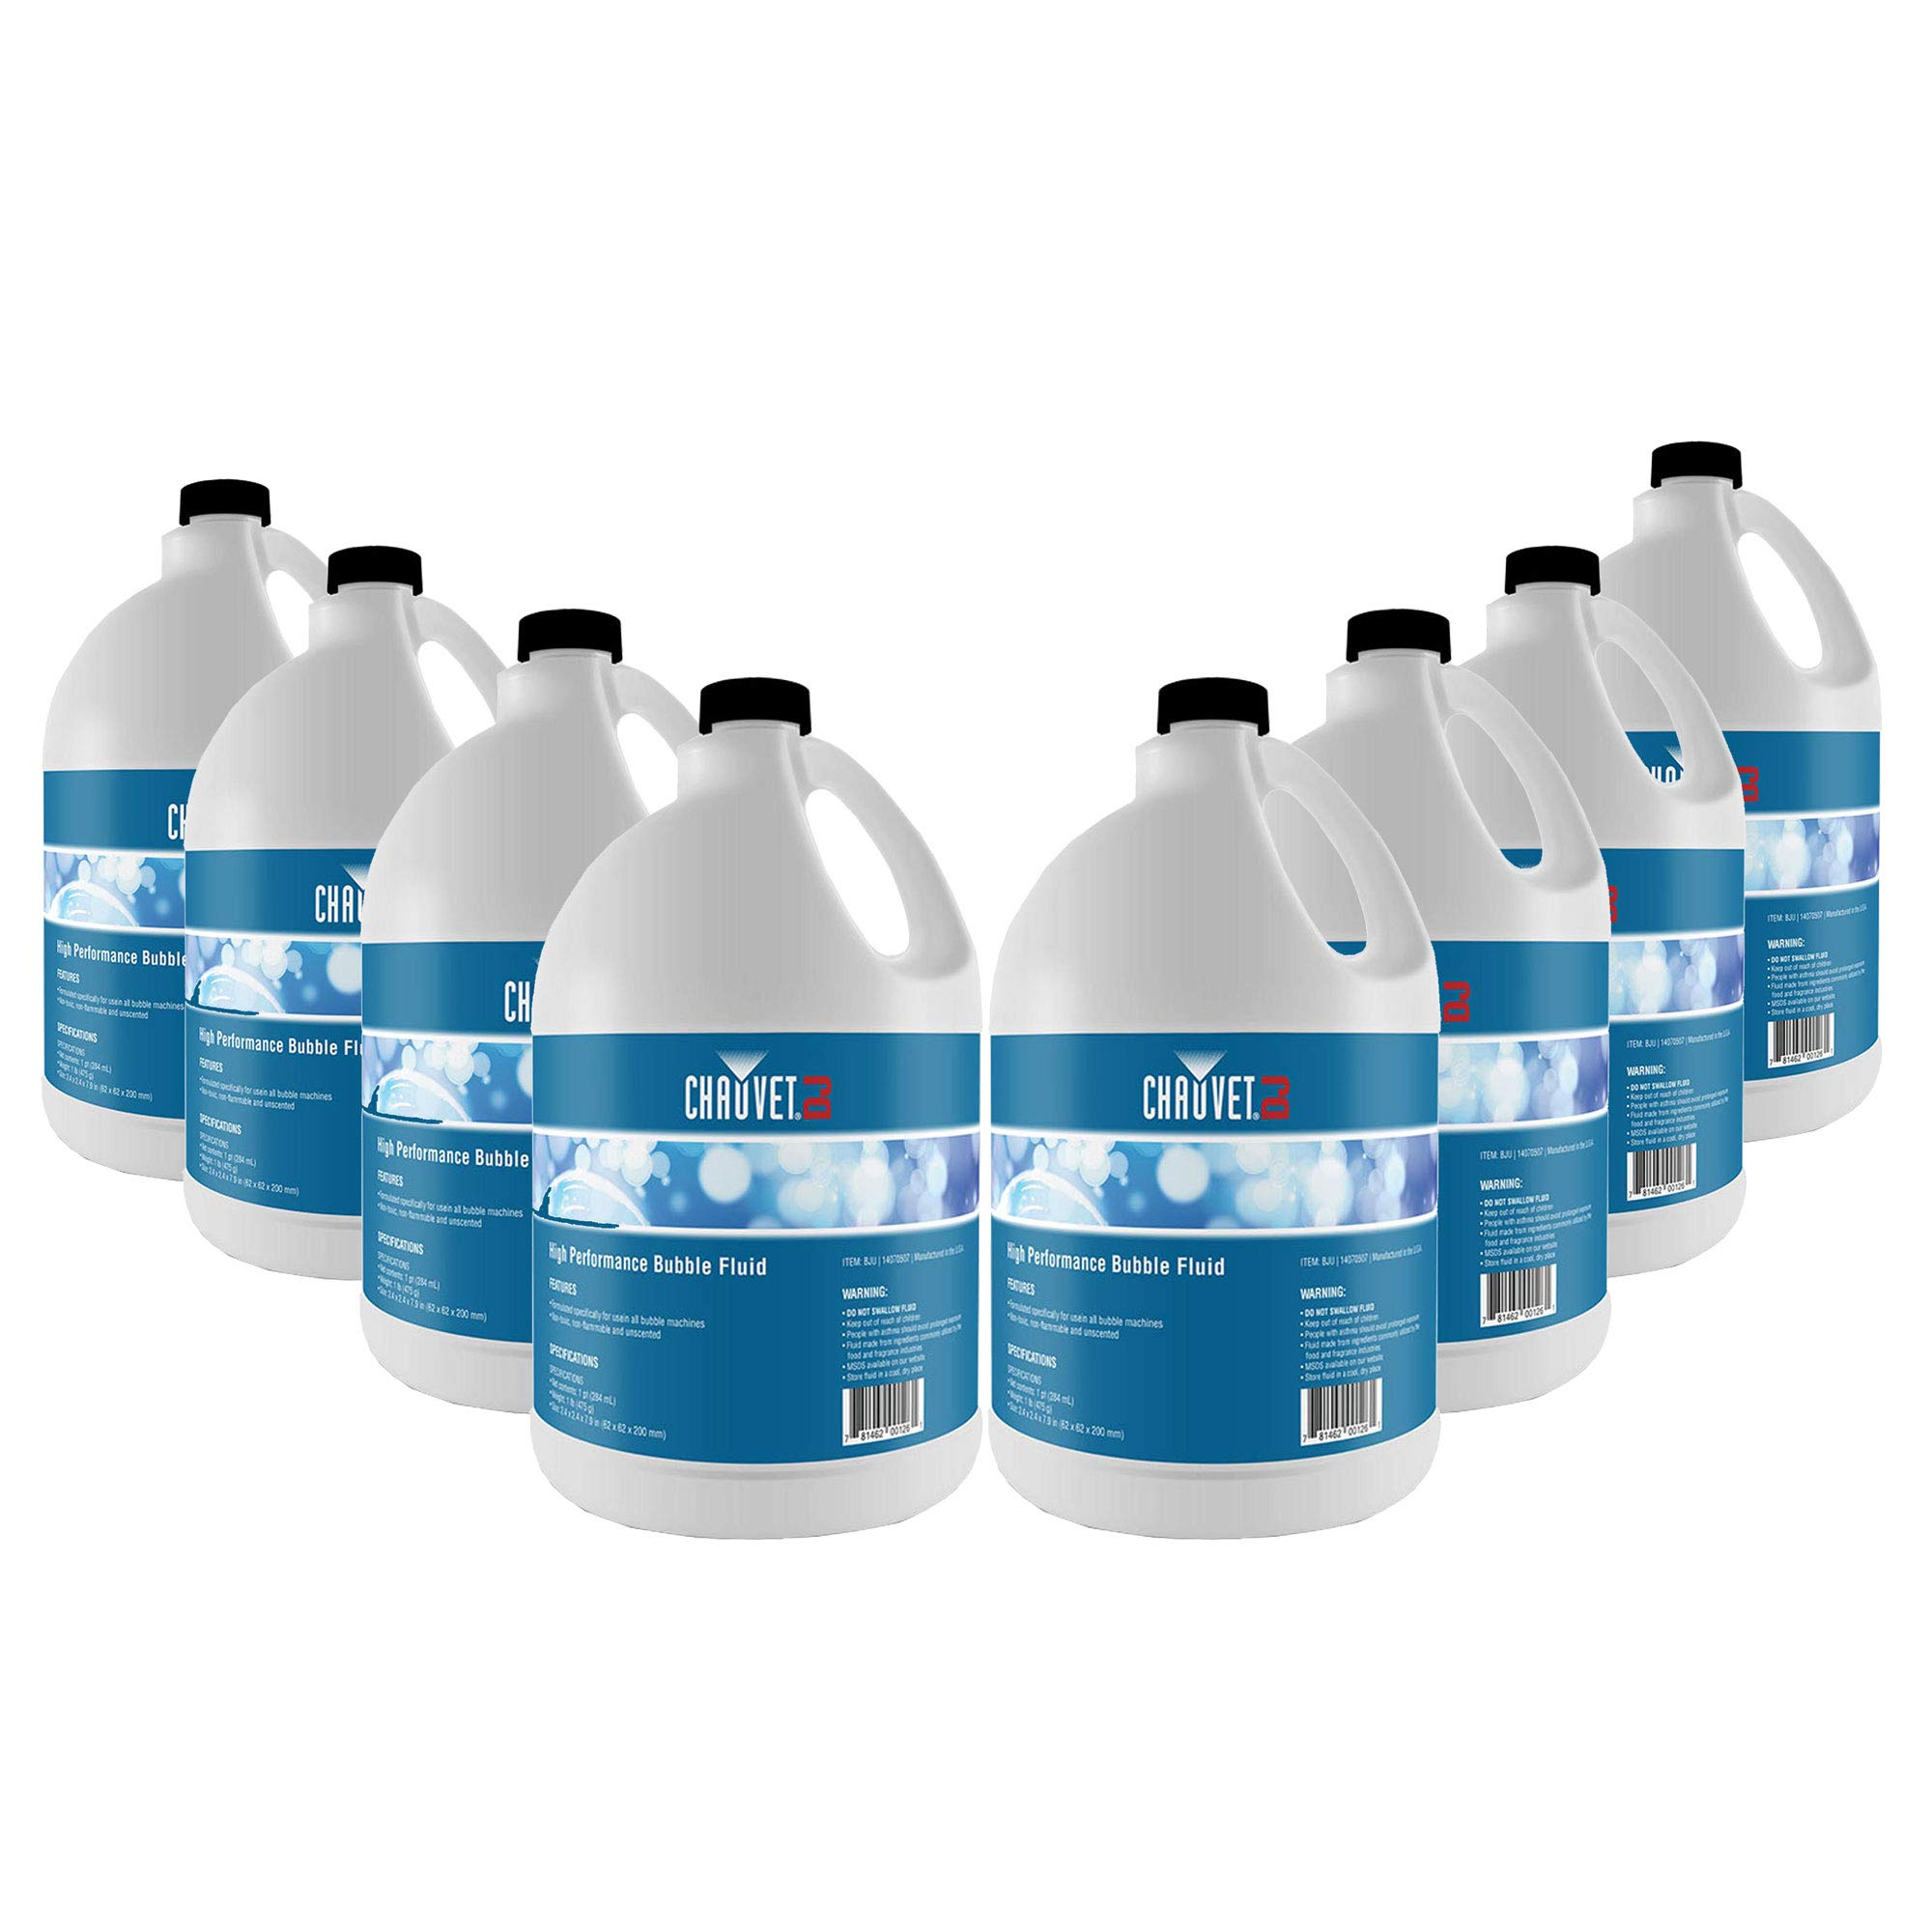 Chauvet High-Performance Non-Staining Unscented Bubble Fluid, 1-Gallon (8 Pack)